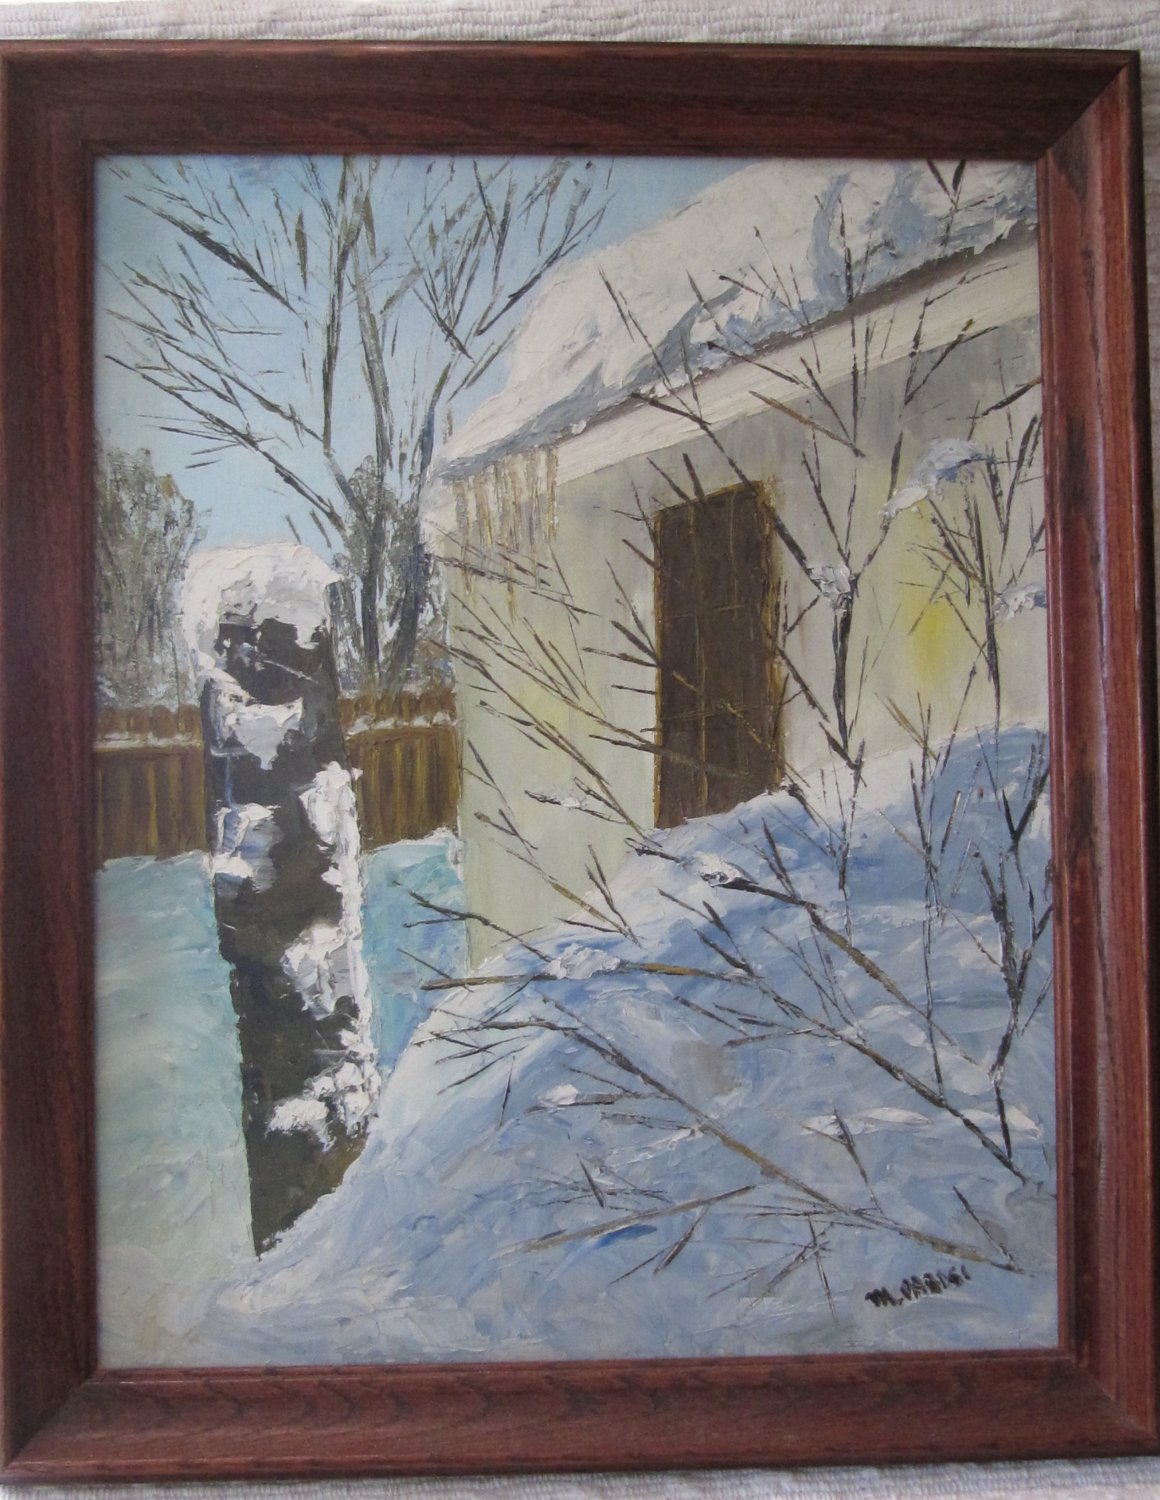 M. PARISI Signed Oil Painting Canvas Winter Scene Drifting Snow Art 18.5 x 23 In in Wood Frame